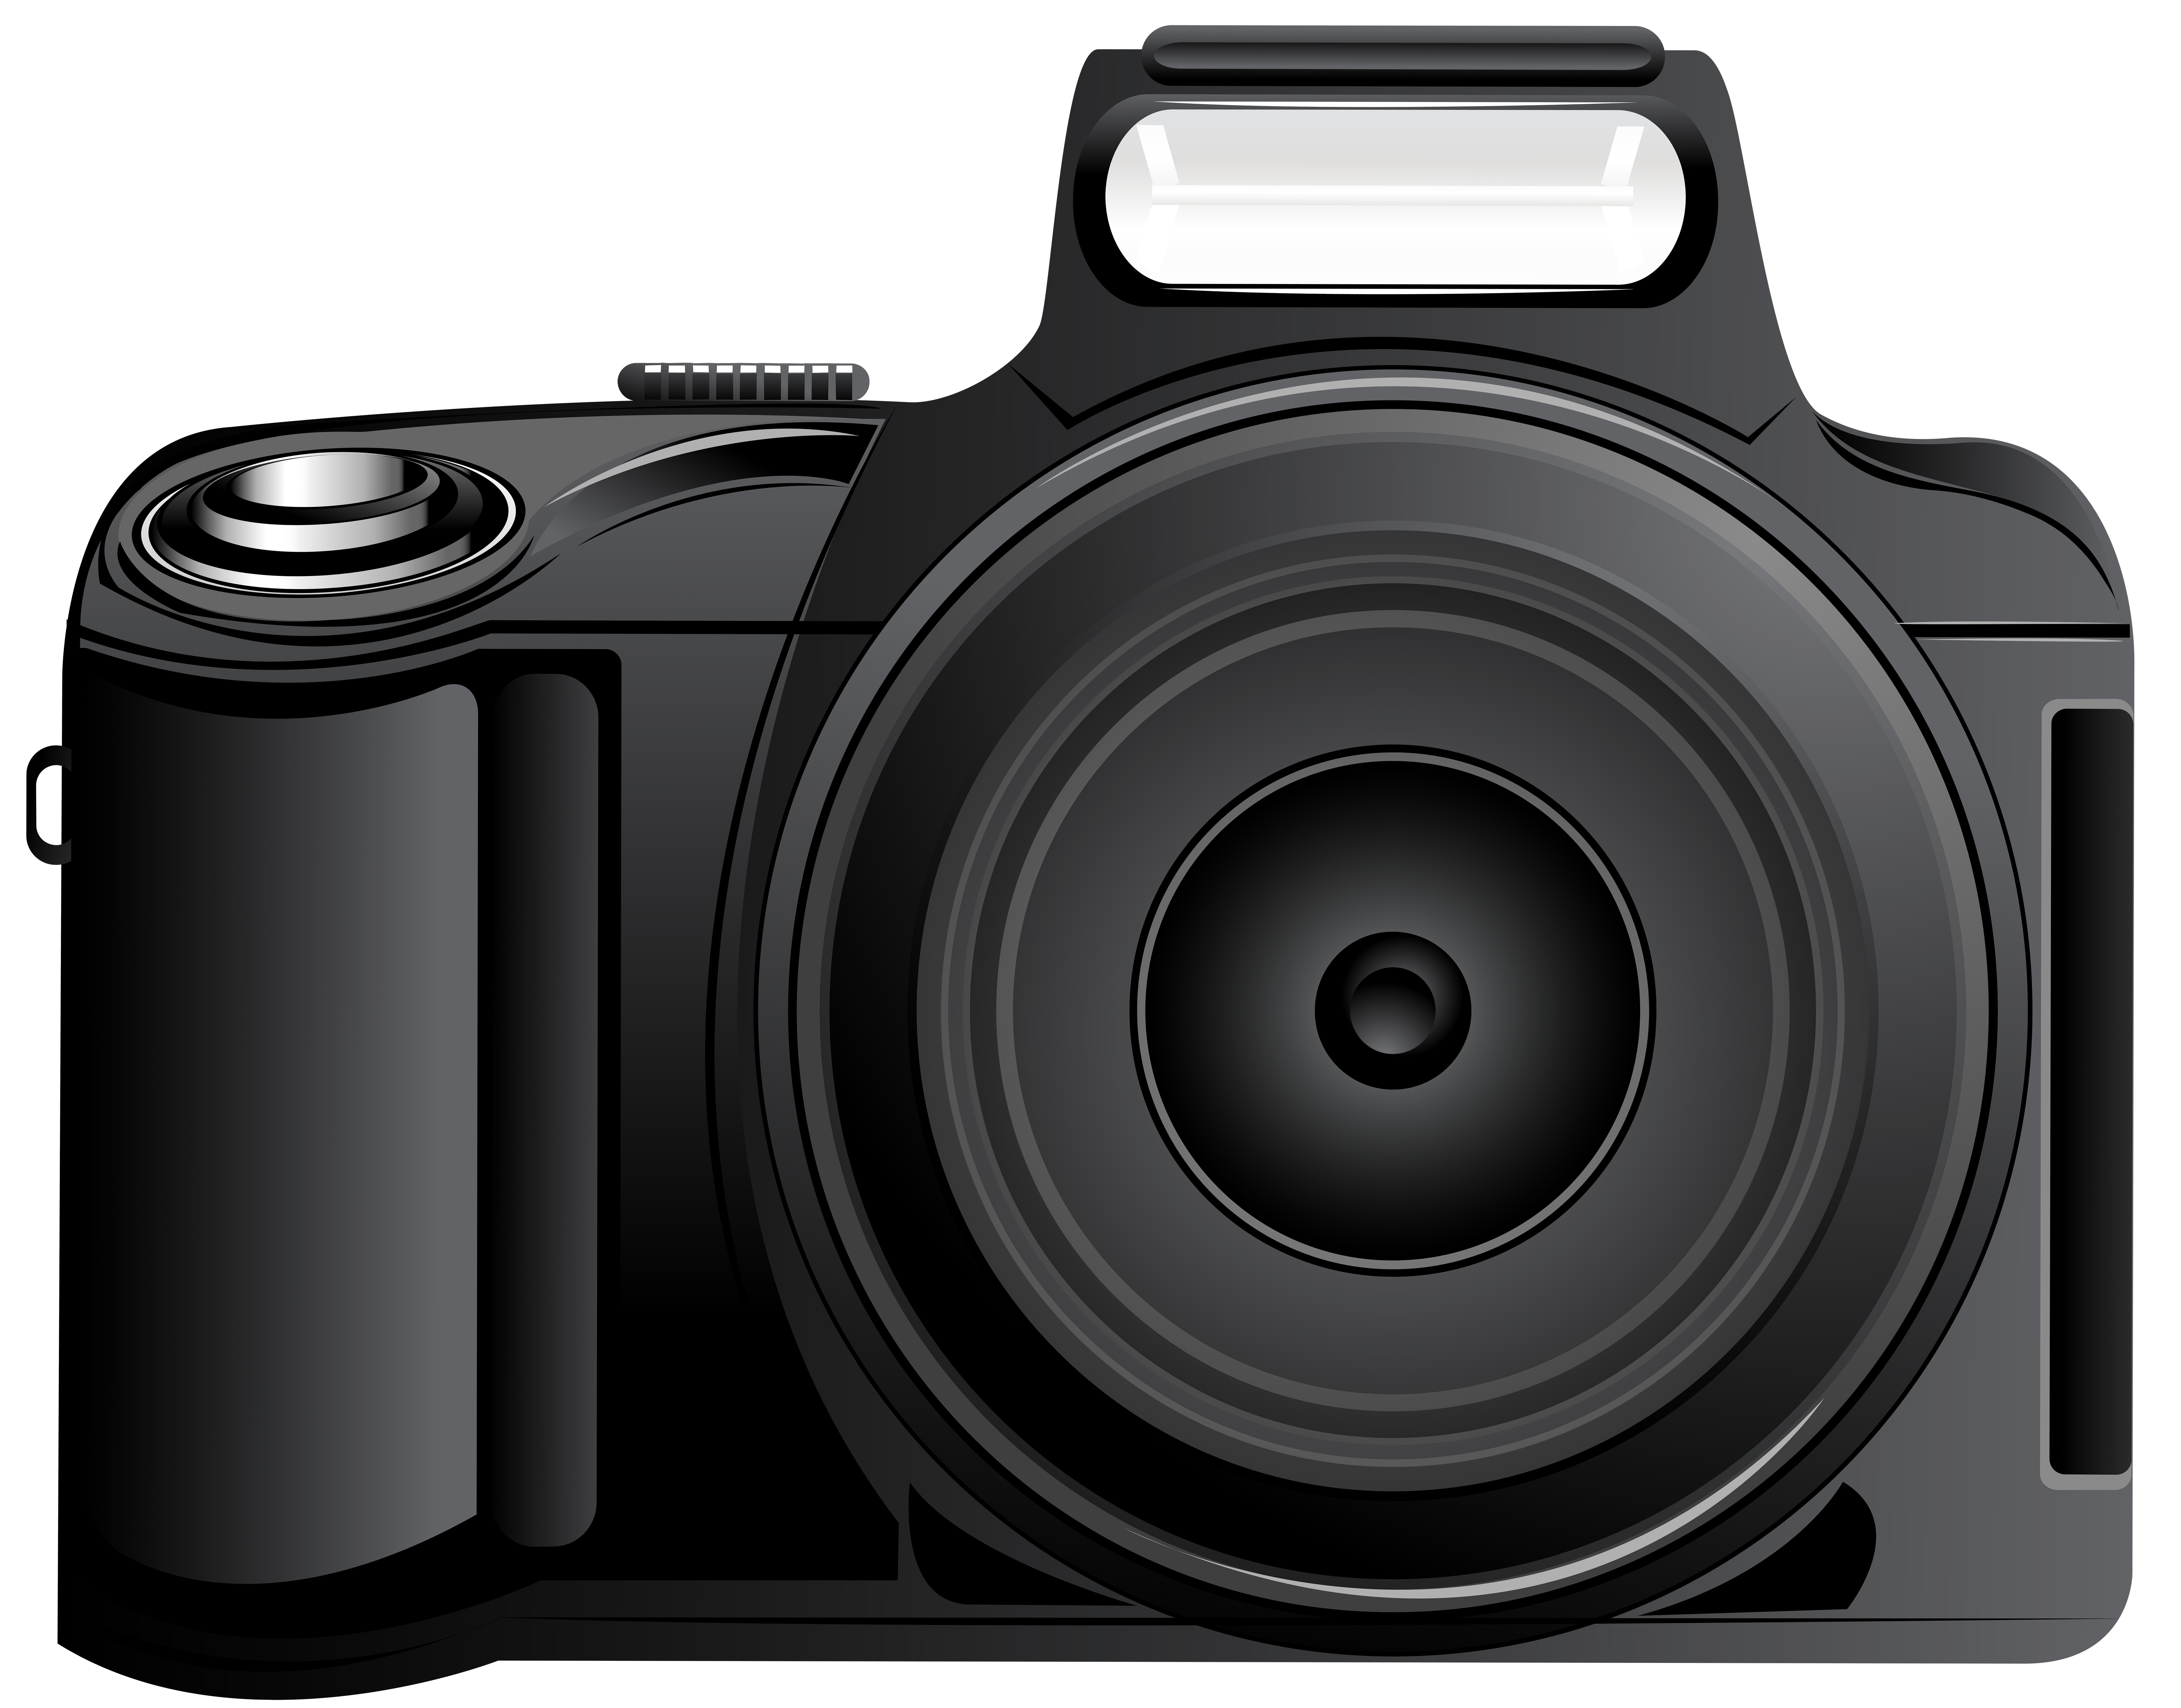 Camera clip art png. Image gallery yopriceville high